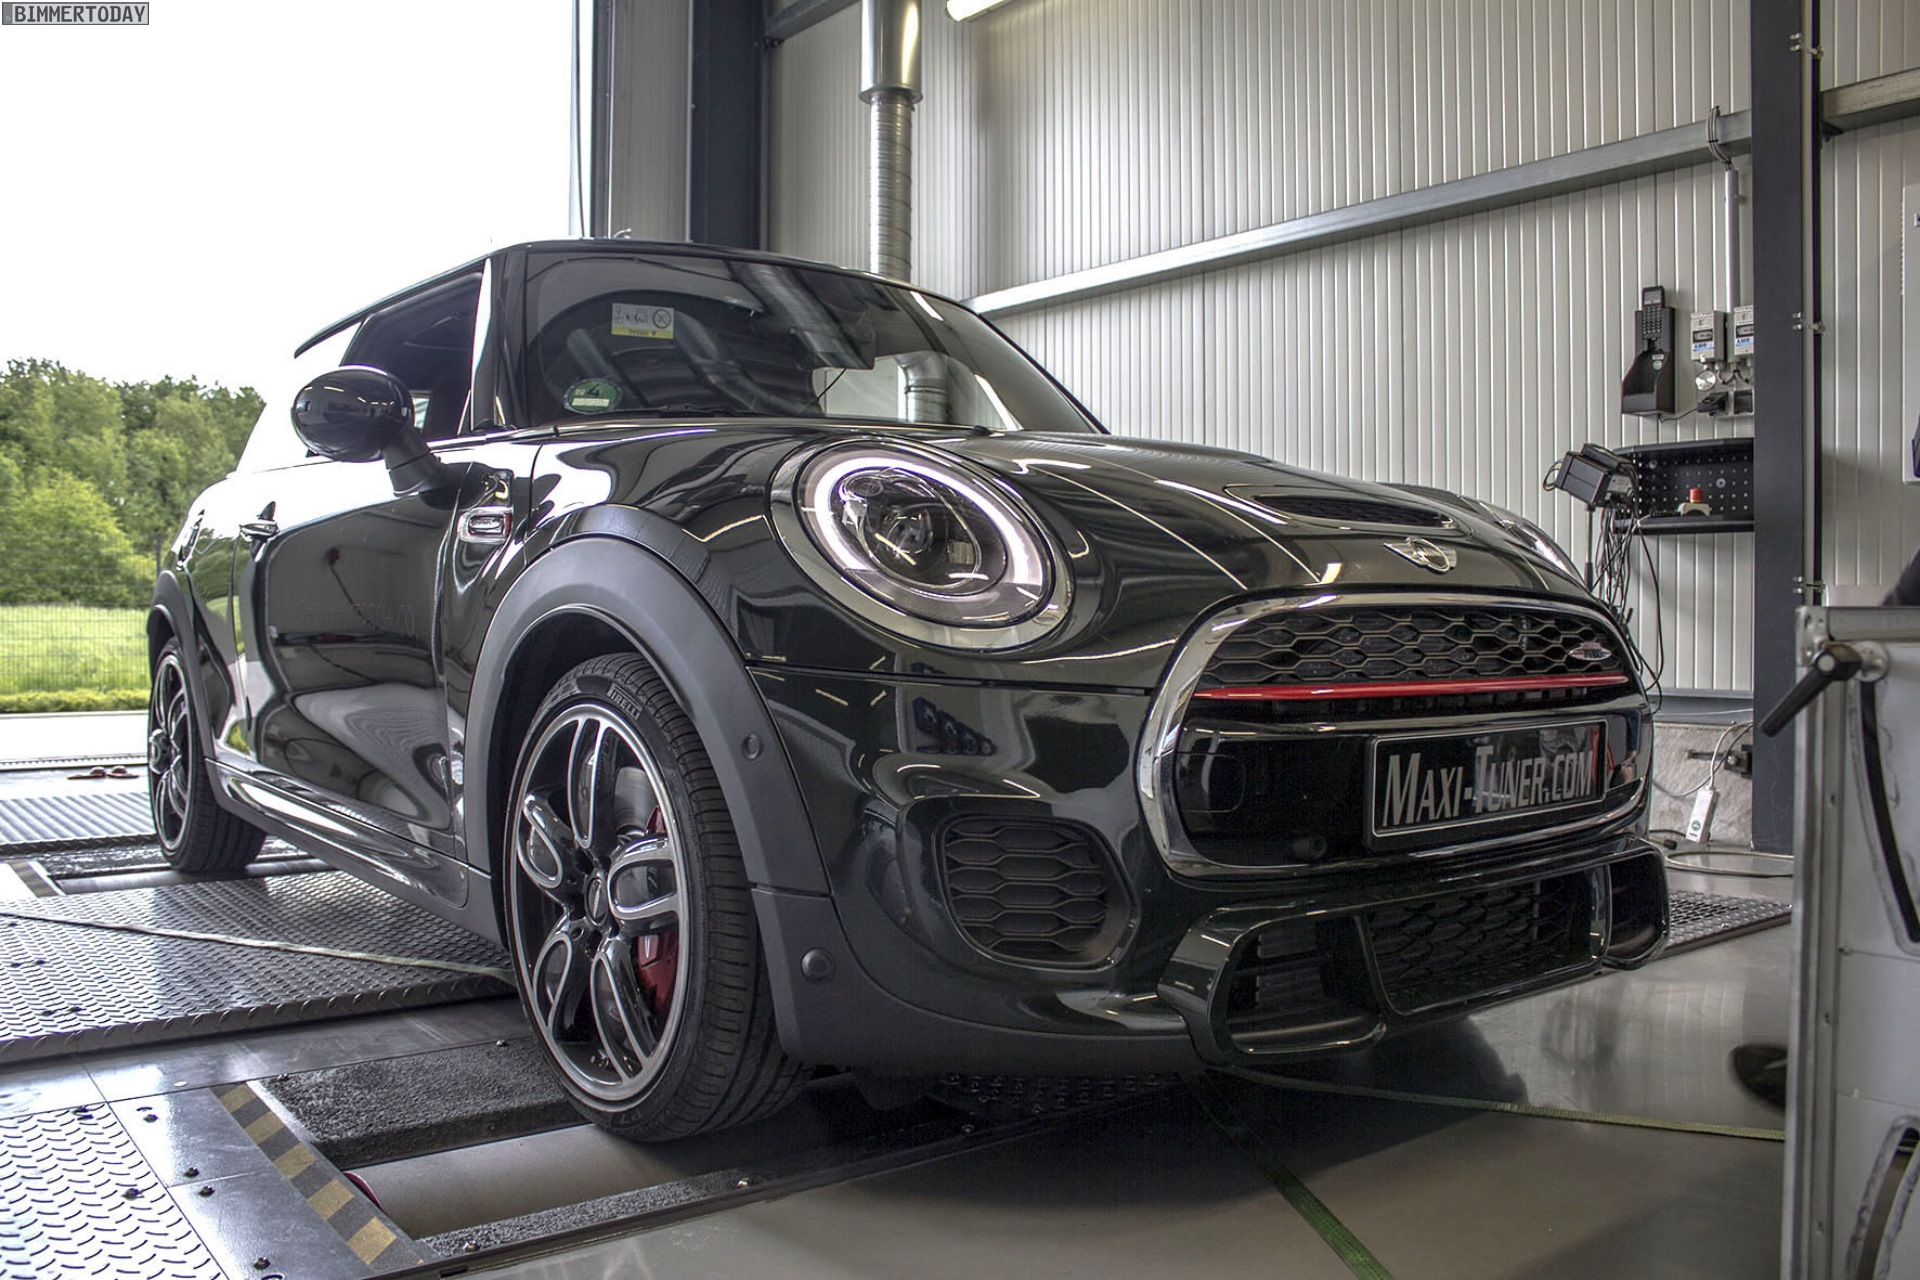 Maxi Tuner Mini John Cooper Works F56 Tuning Bringt 260 Ps